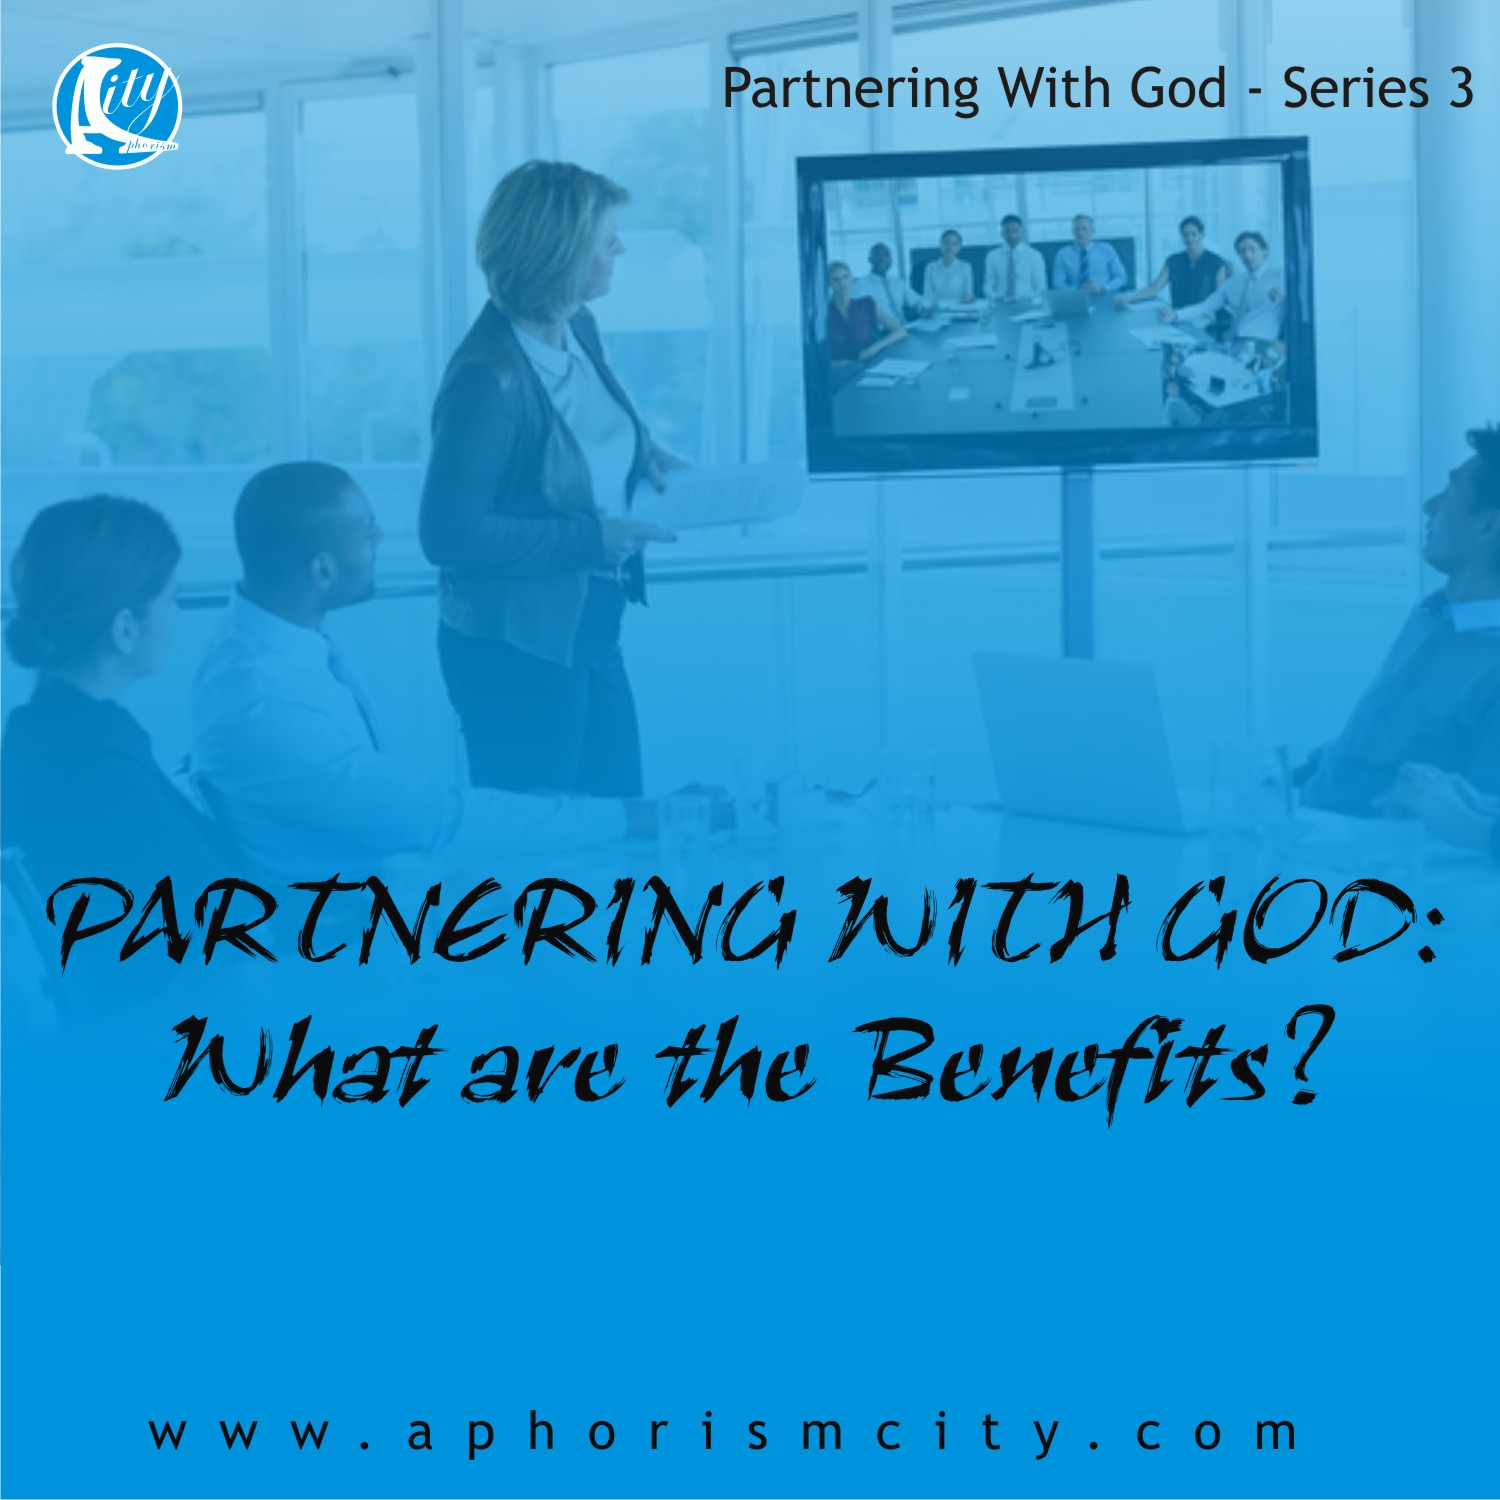 PARTNERING WITH GOD: What are the Benefits?